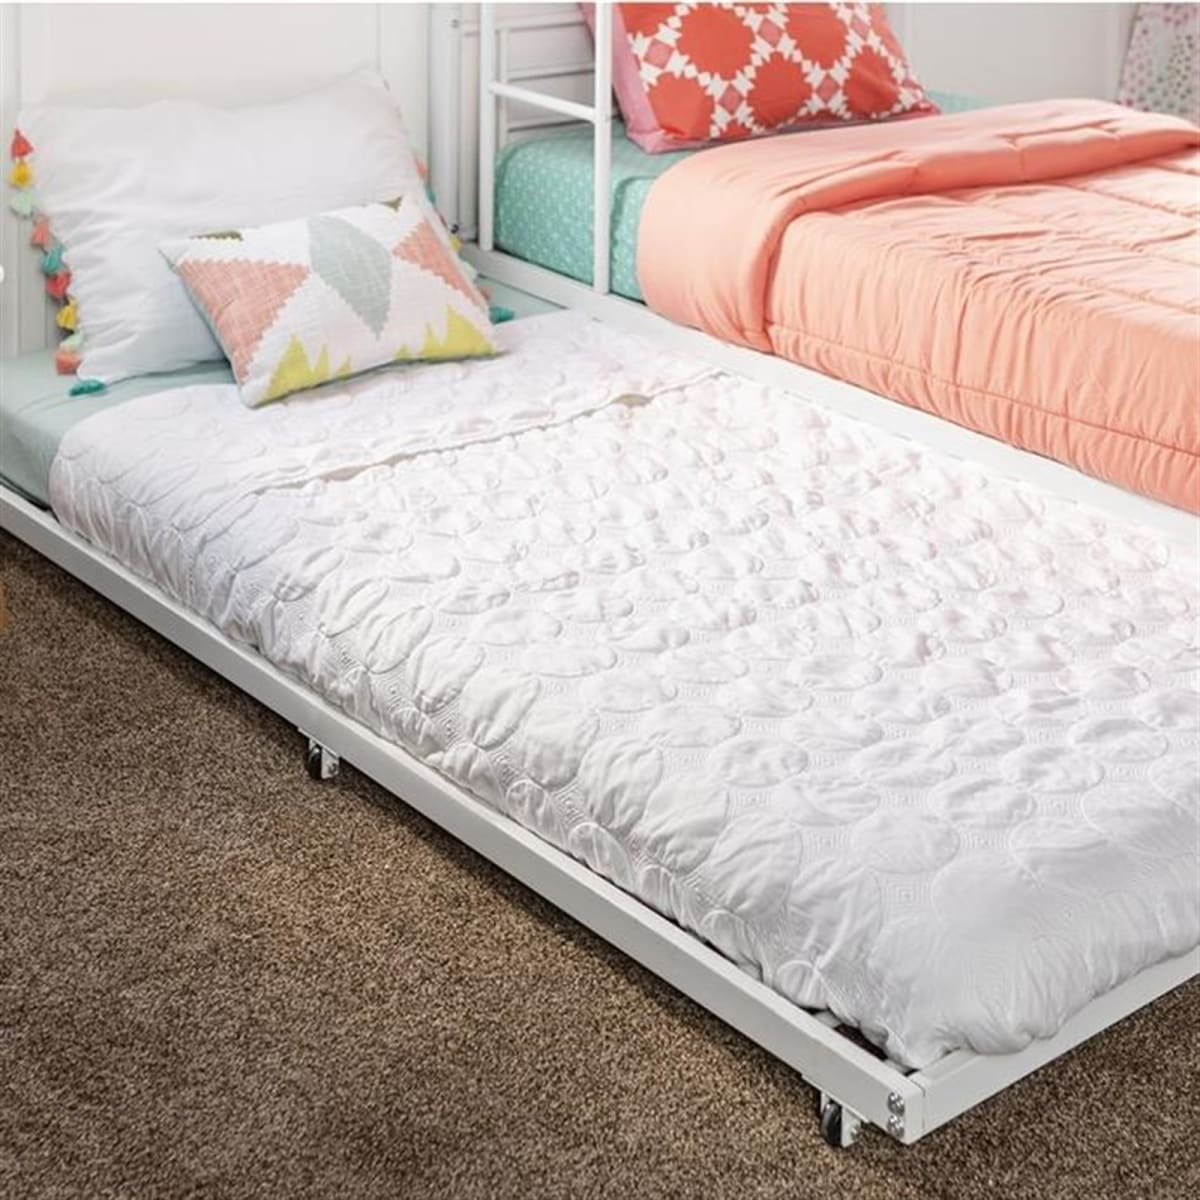 Twin Roll Out Trundle Bed Frame Free Shipping Jane